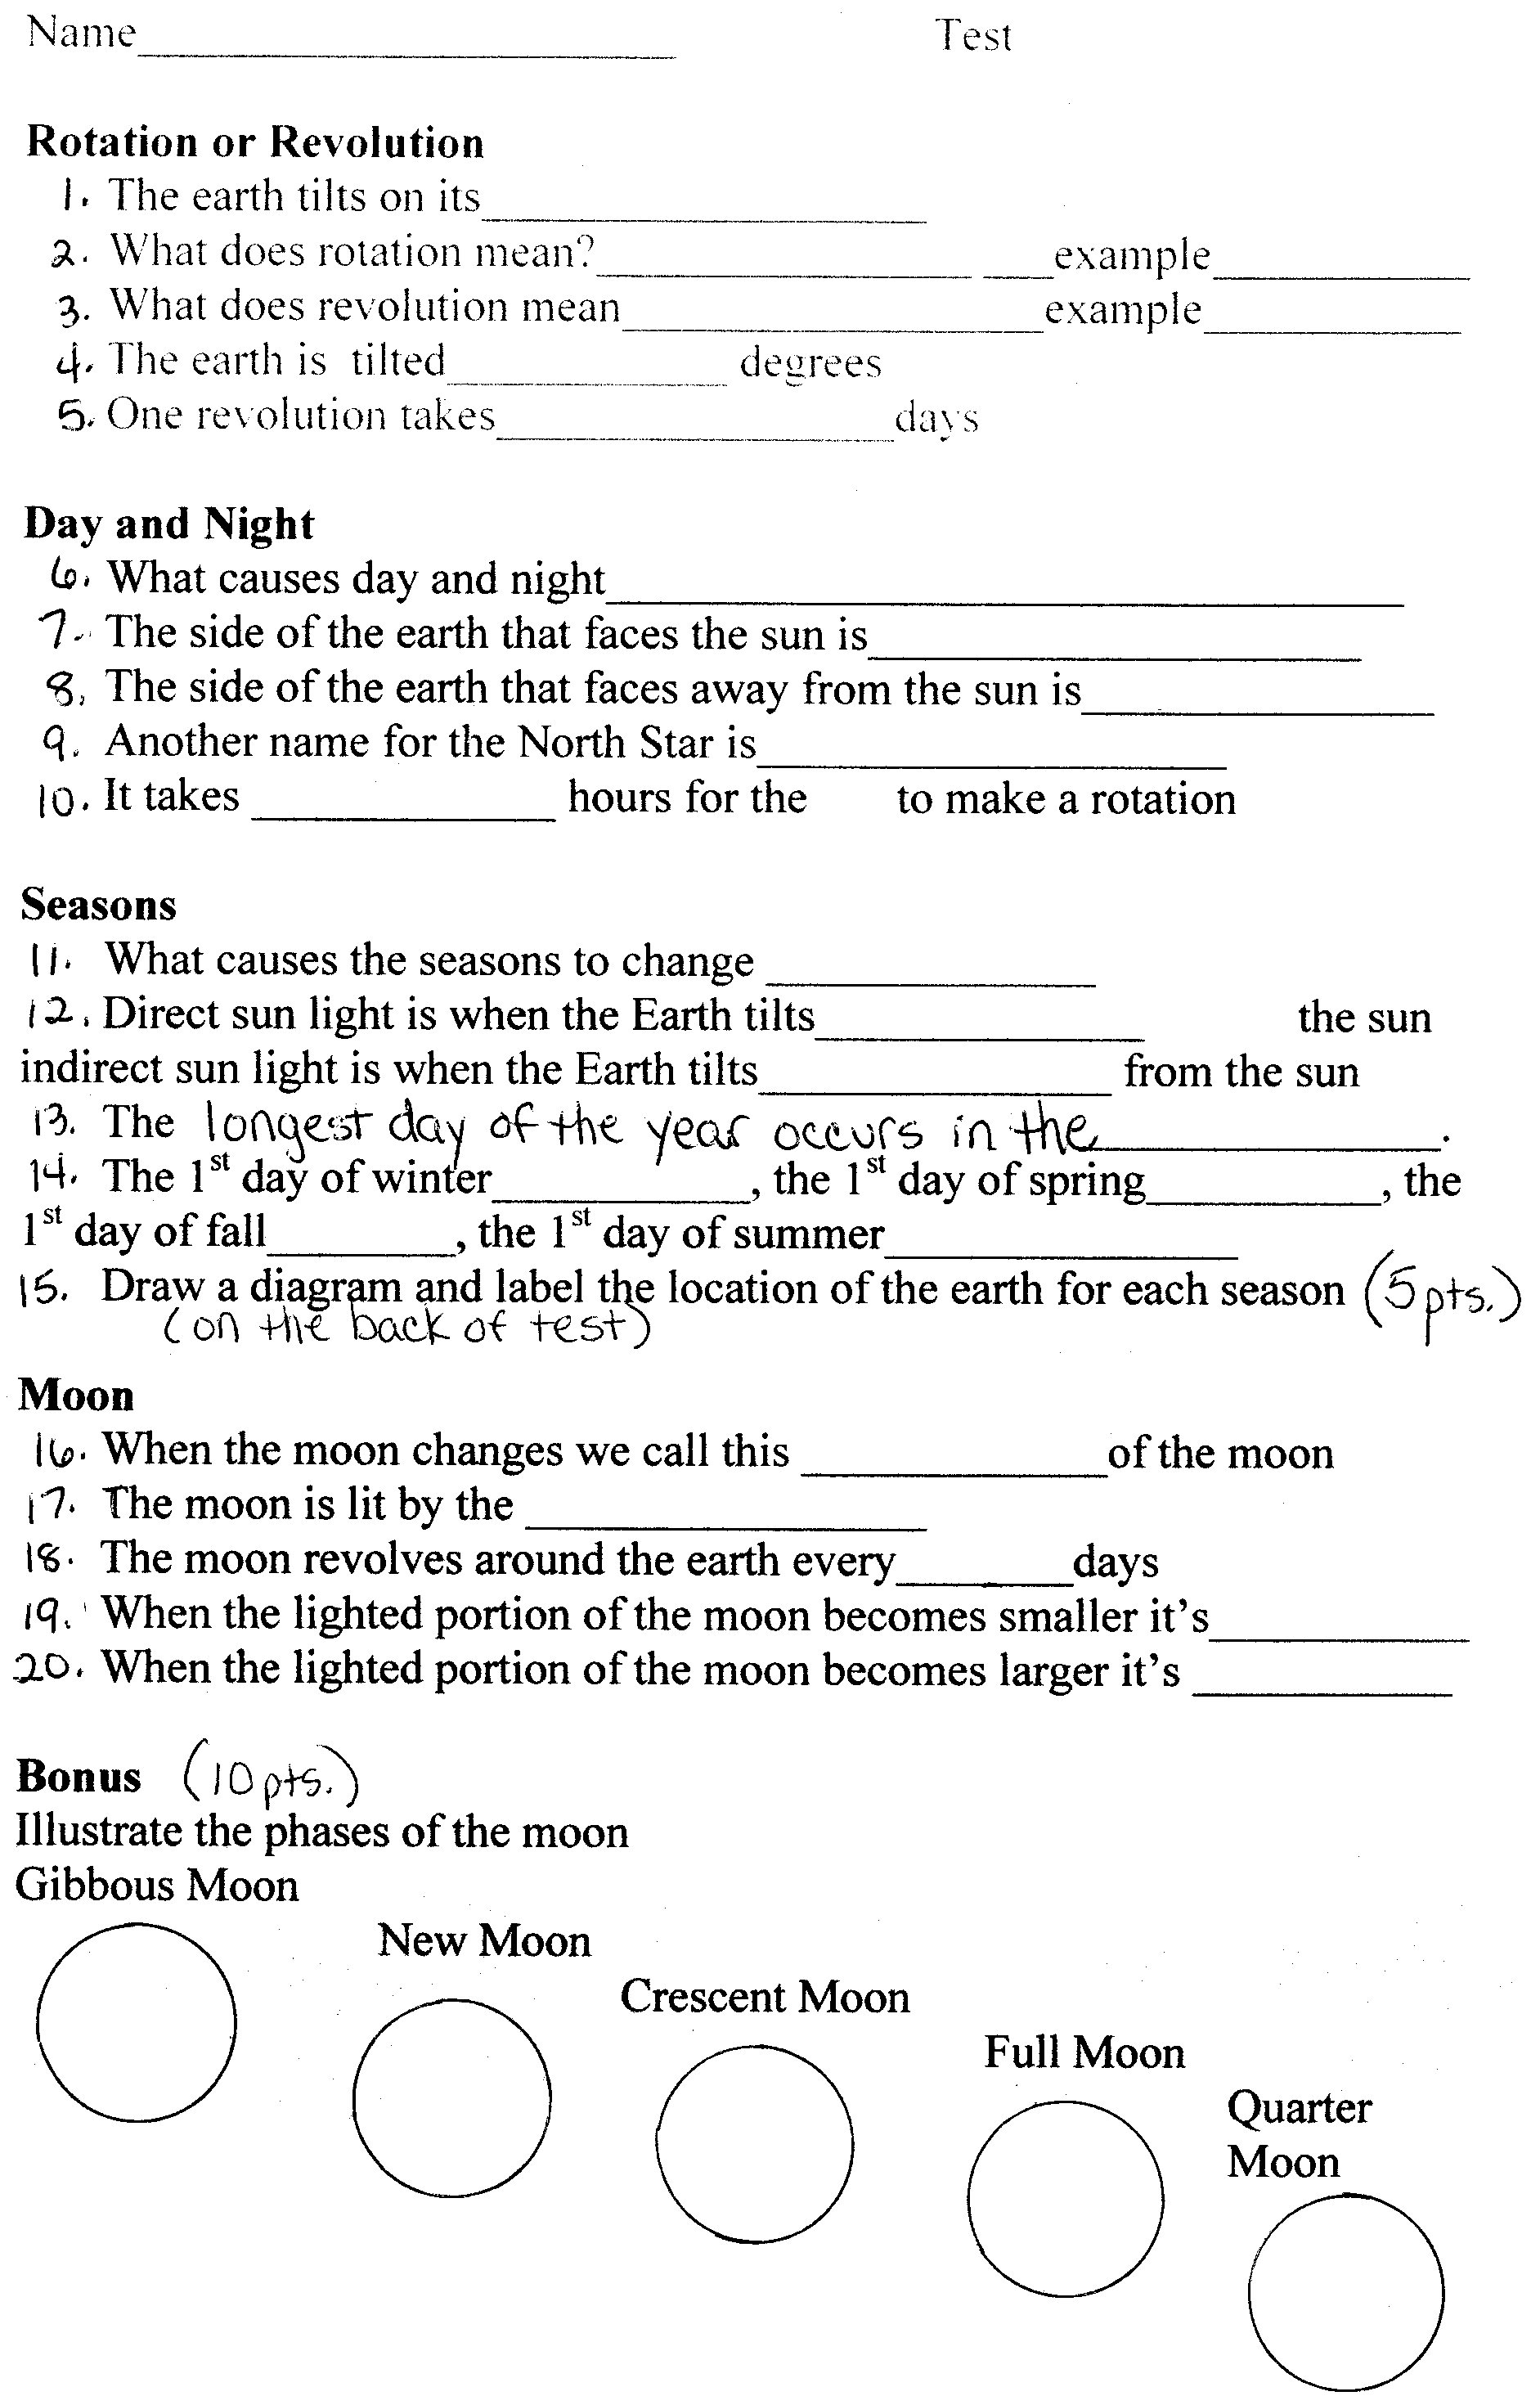 17 Best Images Of Middle School Earth Science Worksheets